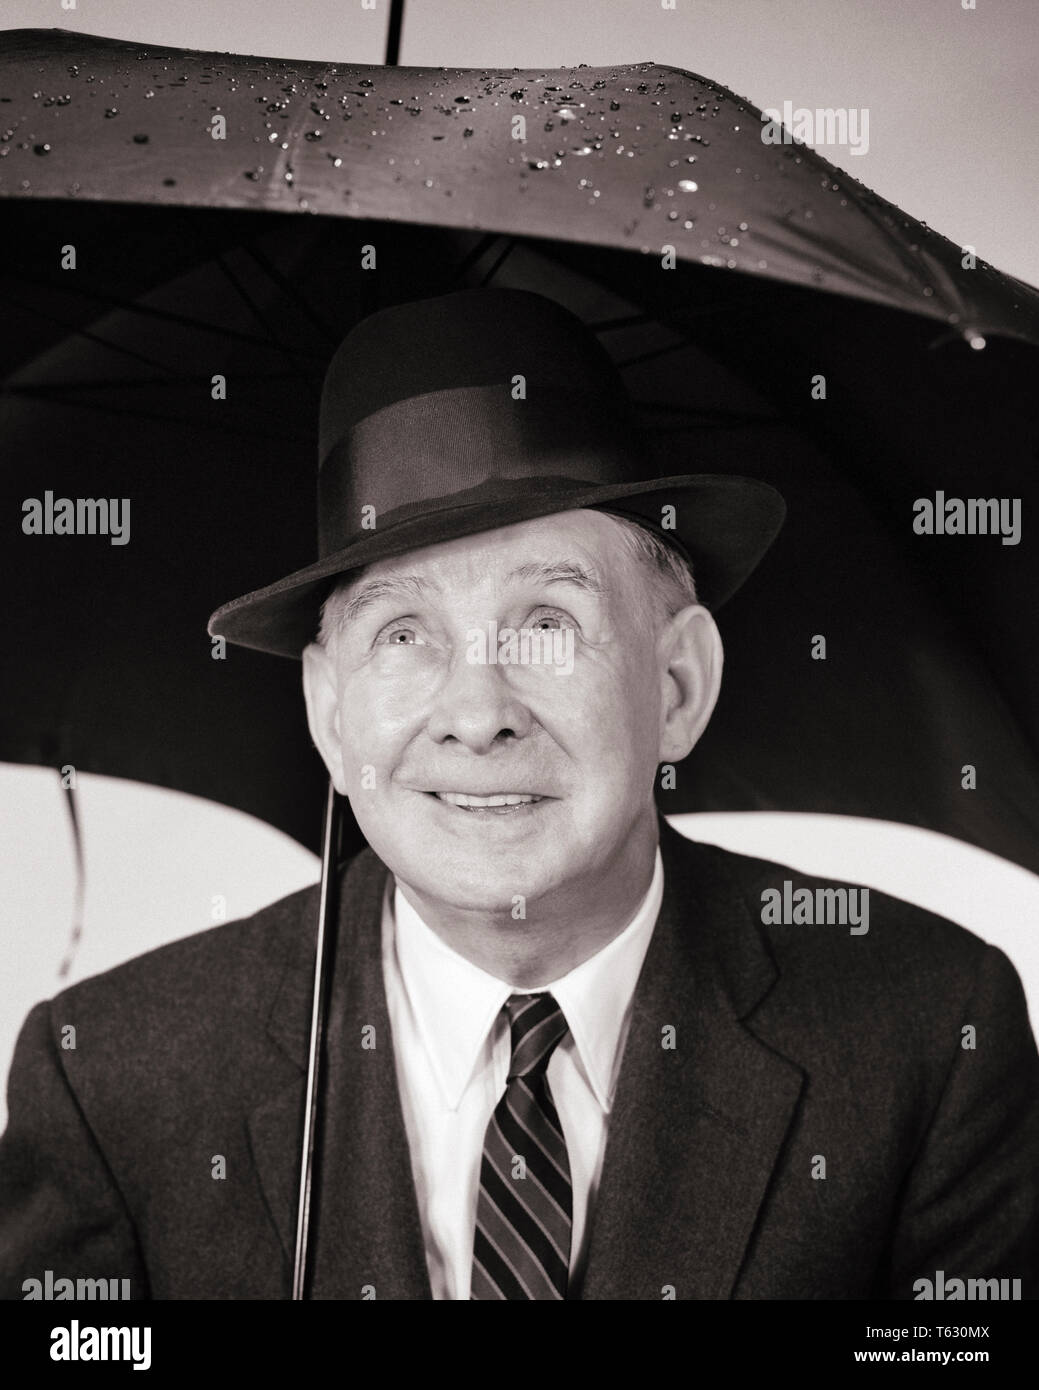 1950s 1960s ELDERLY MAN UNDER UMBRELLA LOOKING UP AT RAIN DROPS - s8706 HAR001 HARS UP FORECAST ELDERS CONCEPTUAL DROPS LOOKING UP BLACK AND WHITE CAUCASIAN ETHNICITY HAR001 METEOROLOGY OLD FASHIONED PRECIPITATION - Stock Image